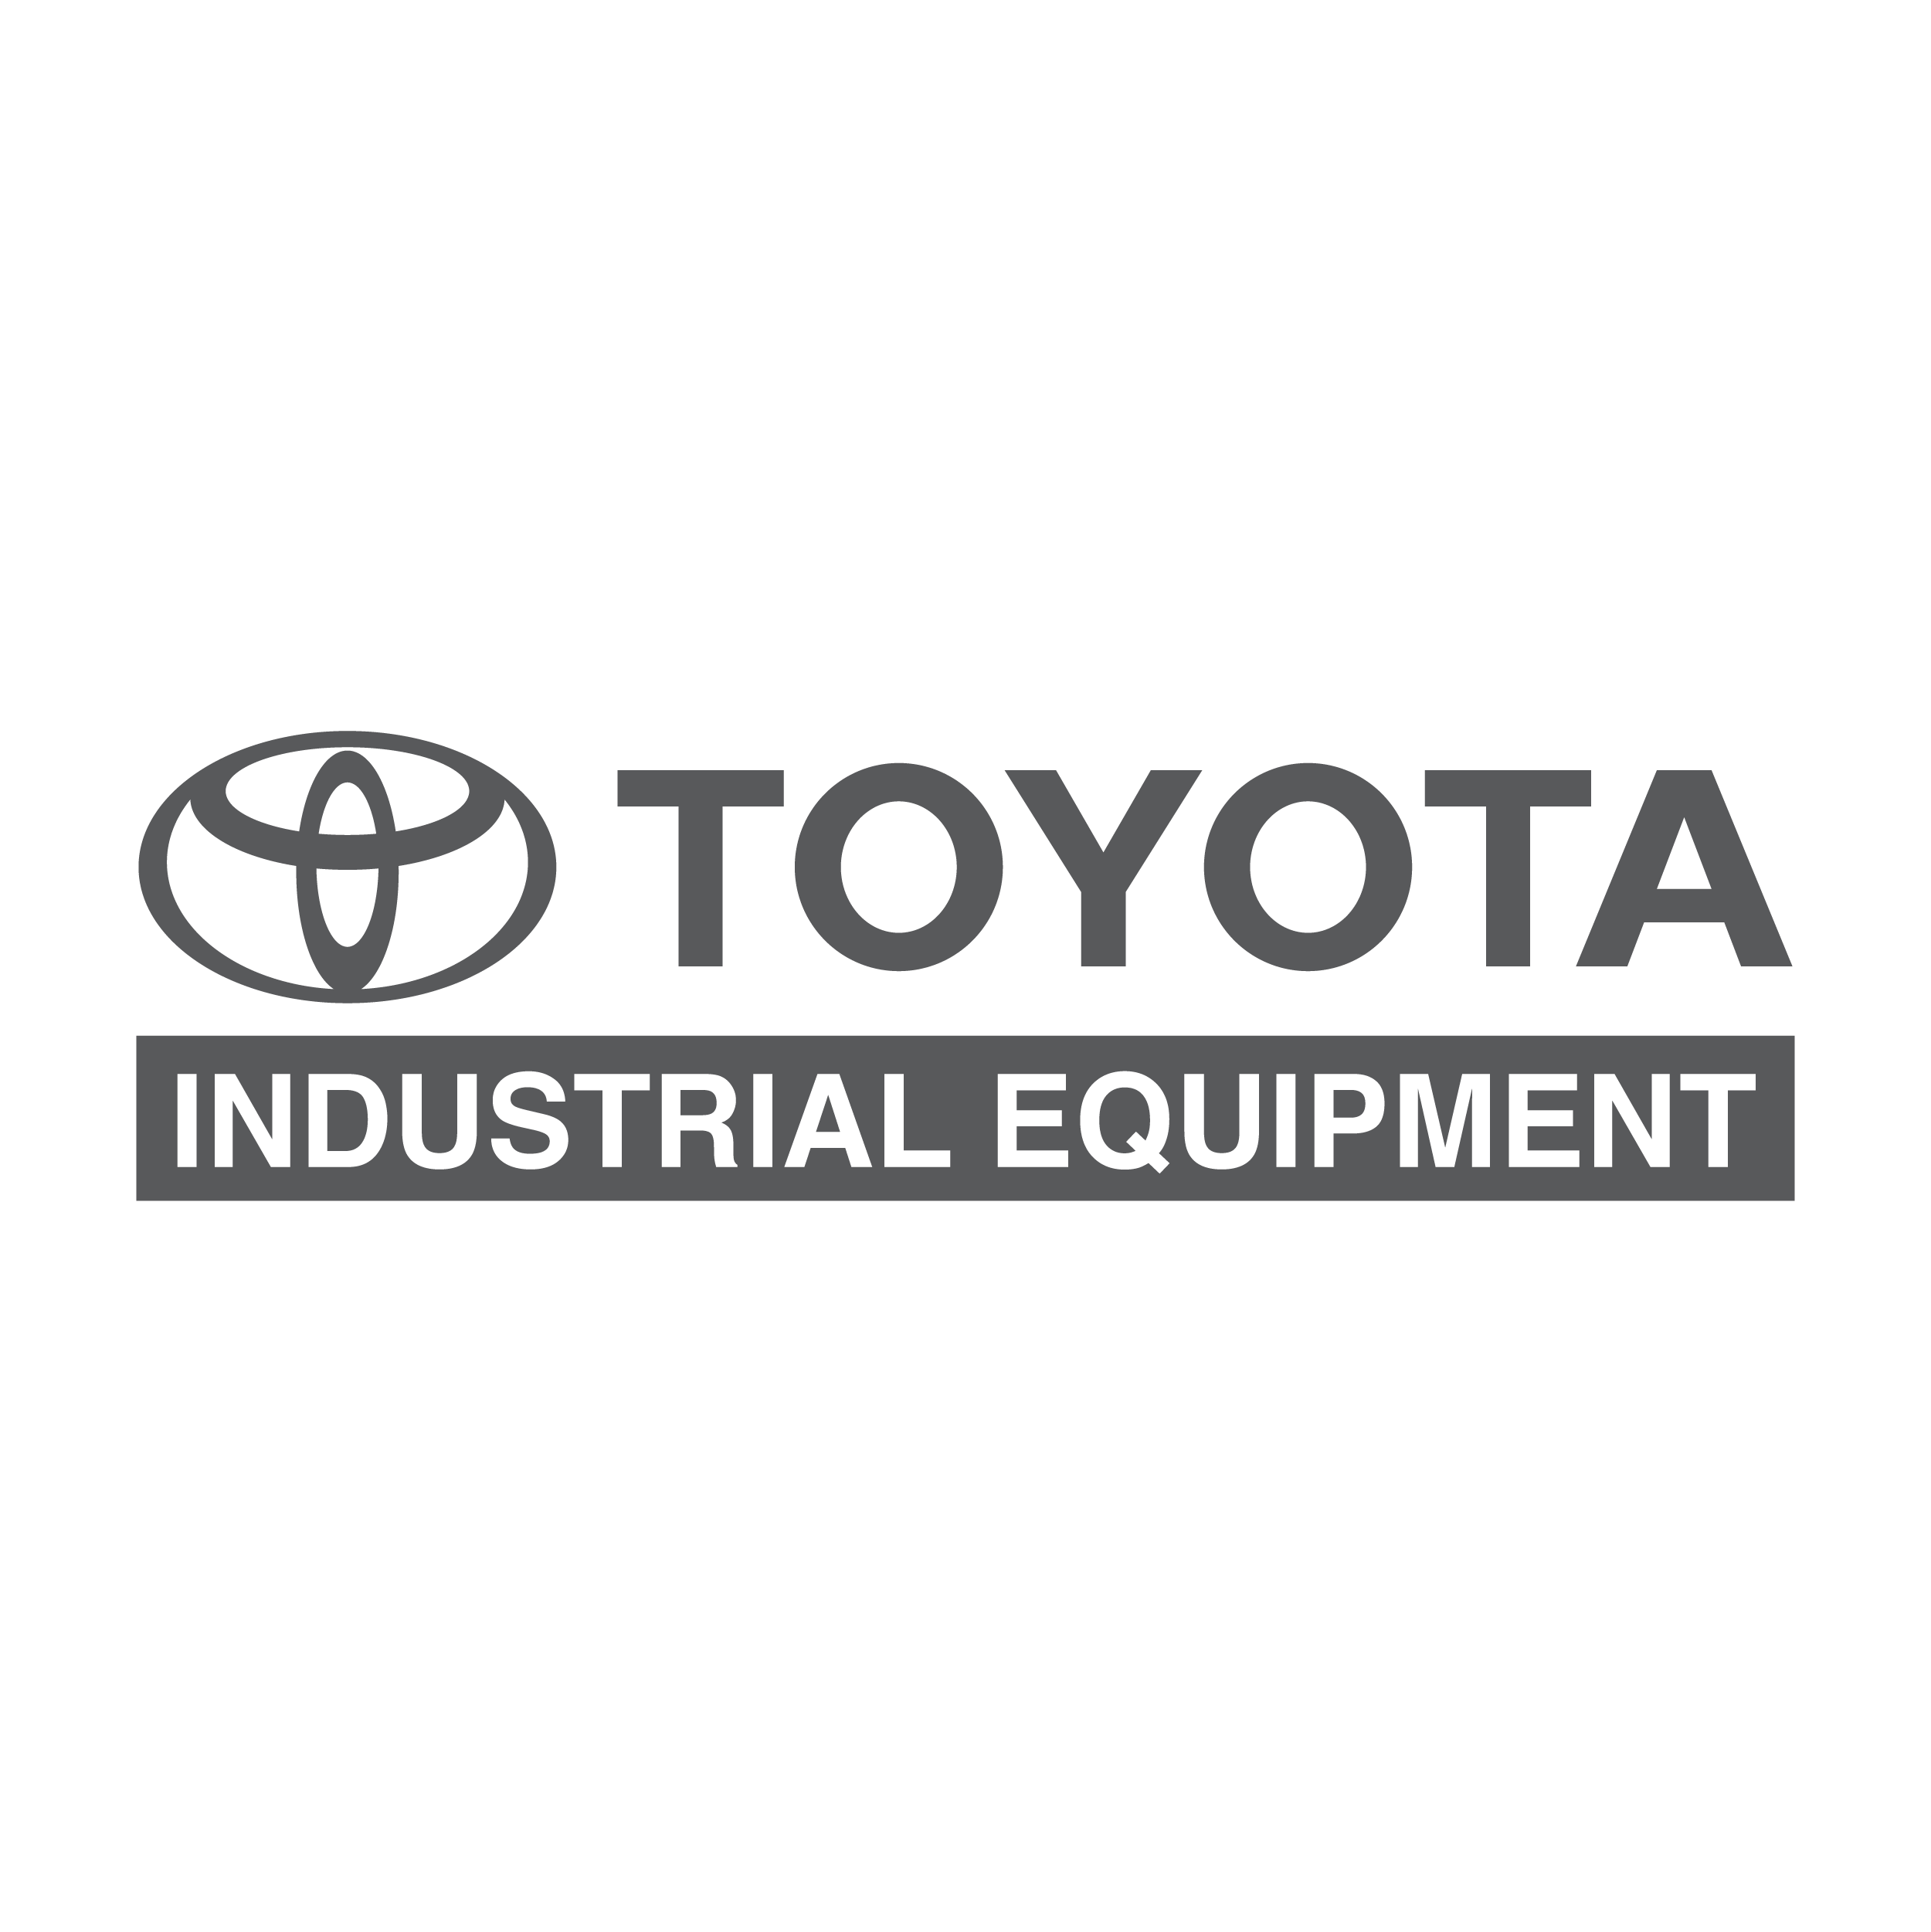 Toyota_Industrial_Equipment_Logo.png